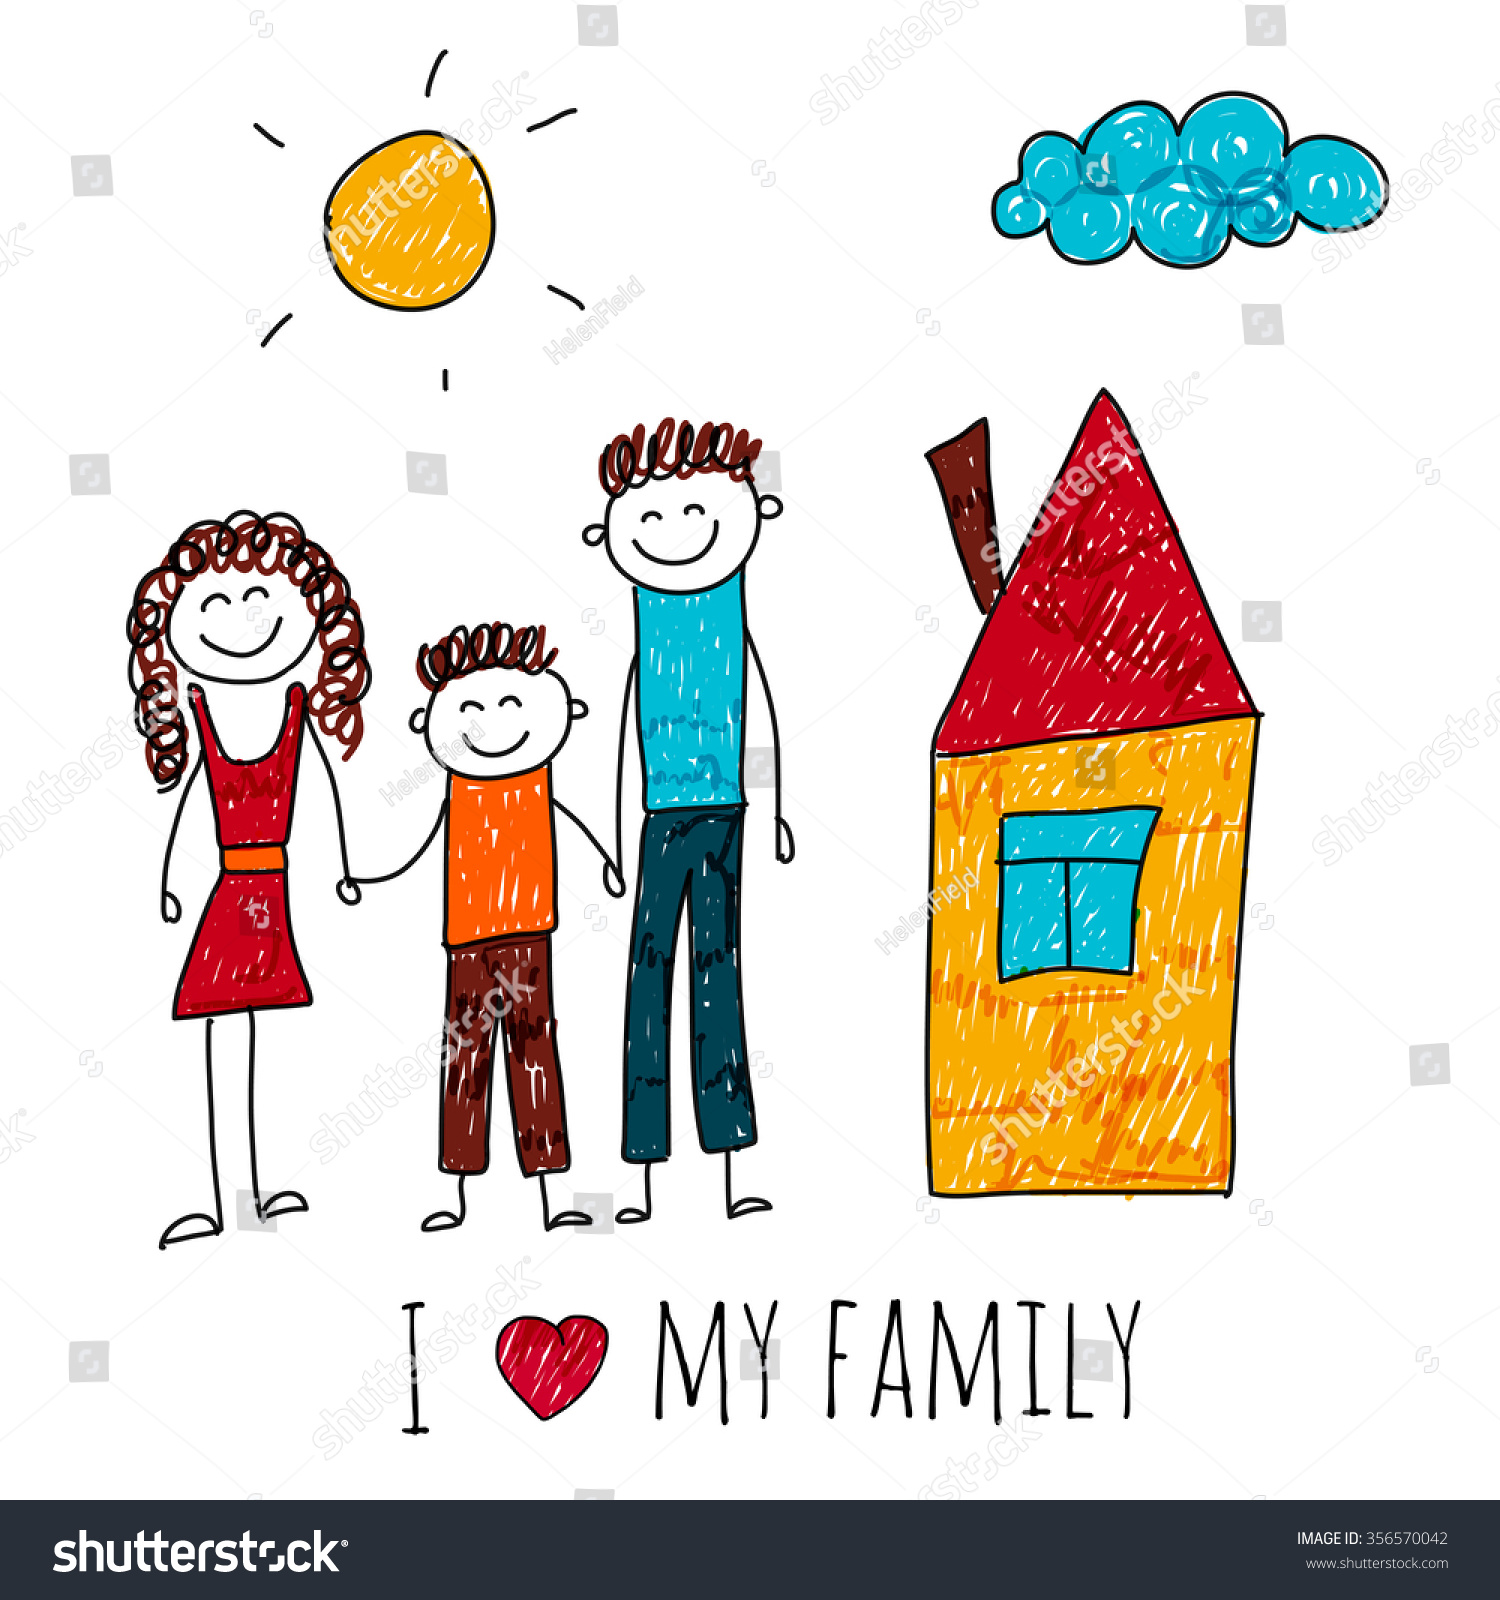 essay about love with family The love a family member gives whether a wife, husband, child, or cousin is a love like no other not everyone feels the same way, in some families loved ones are judged on their actions, and are not shown love when they need it the most.